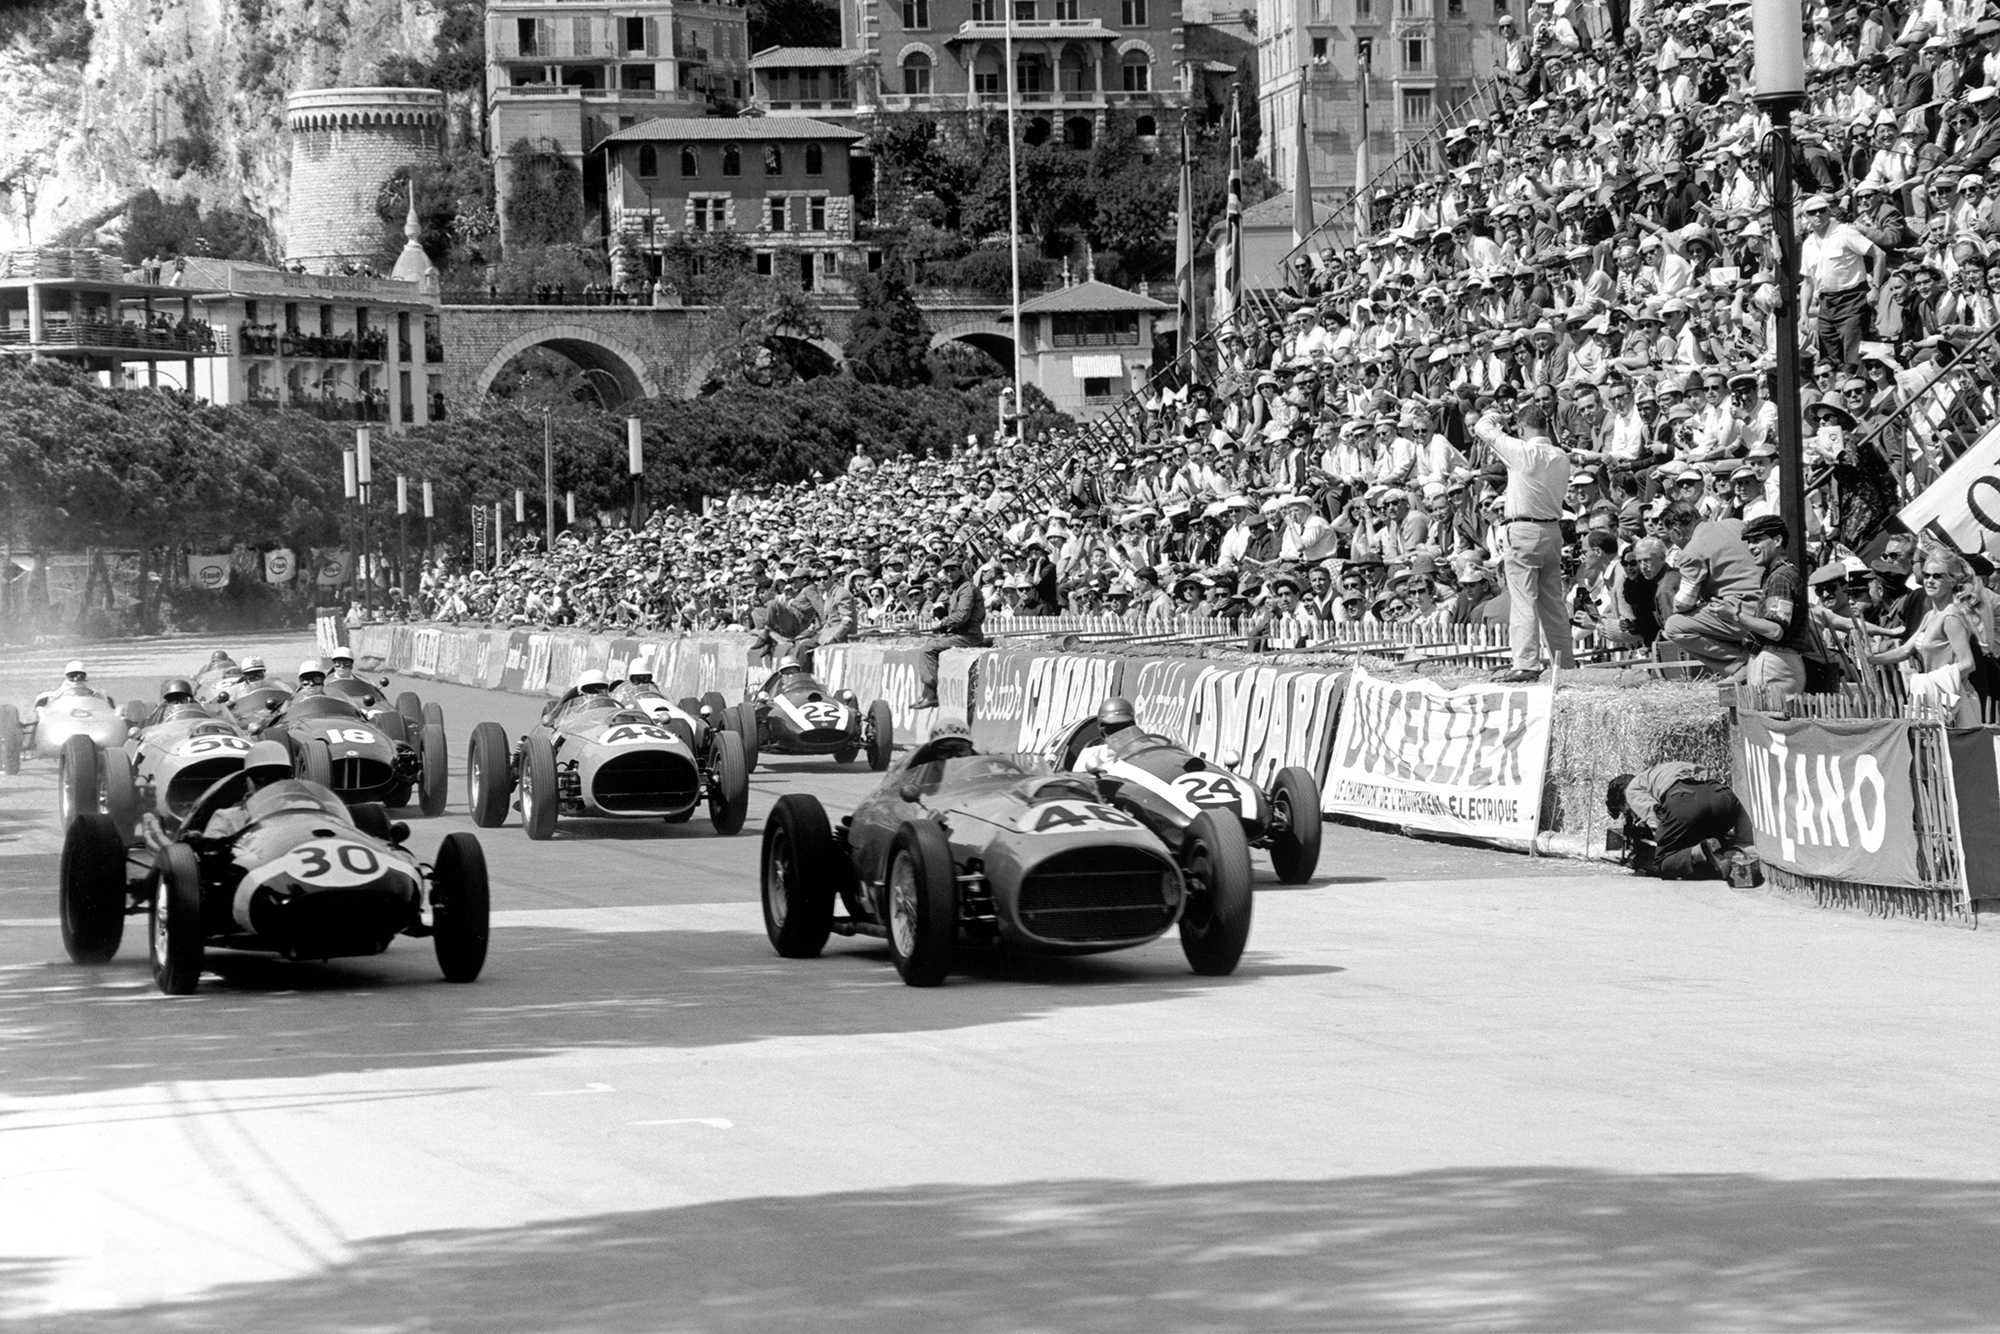 The race starts, with Stirling Moss, number 30 Cooper T51-Climax, and Jean Behra, number 46 Ferrari Dino 246, Tony Brooks in number 50 Ferrari Dino 246, Jo Bonnier, number 18 BRM P25, Phil Hill in number 48 Ferrari Dino 246, and Jack Brabham, number 24 Cooper T51-Climax.